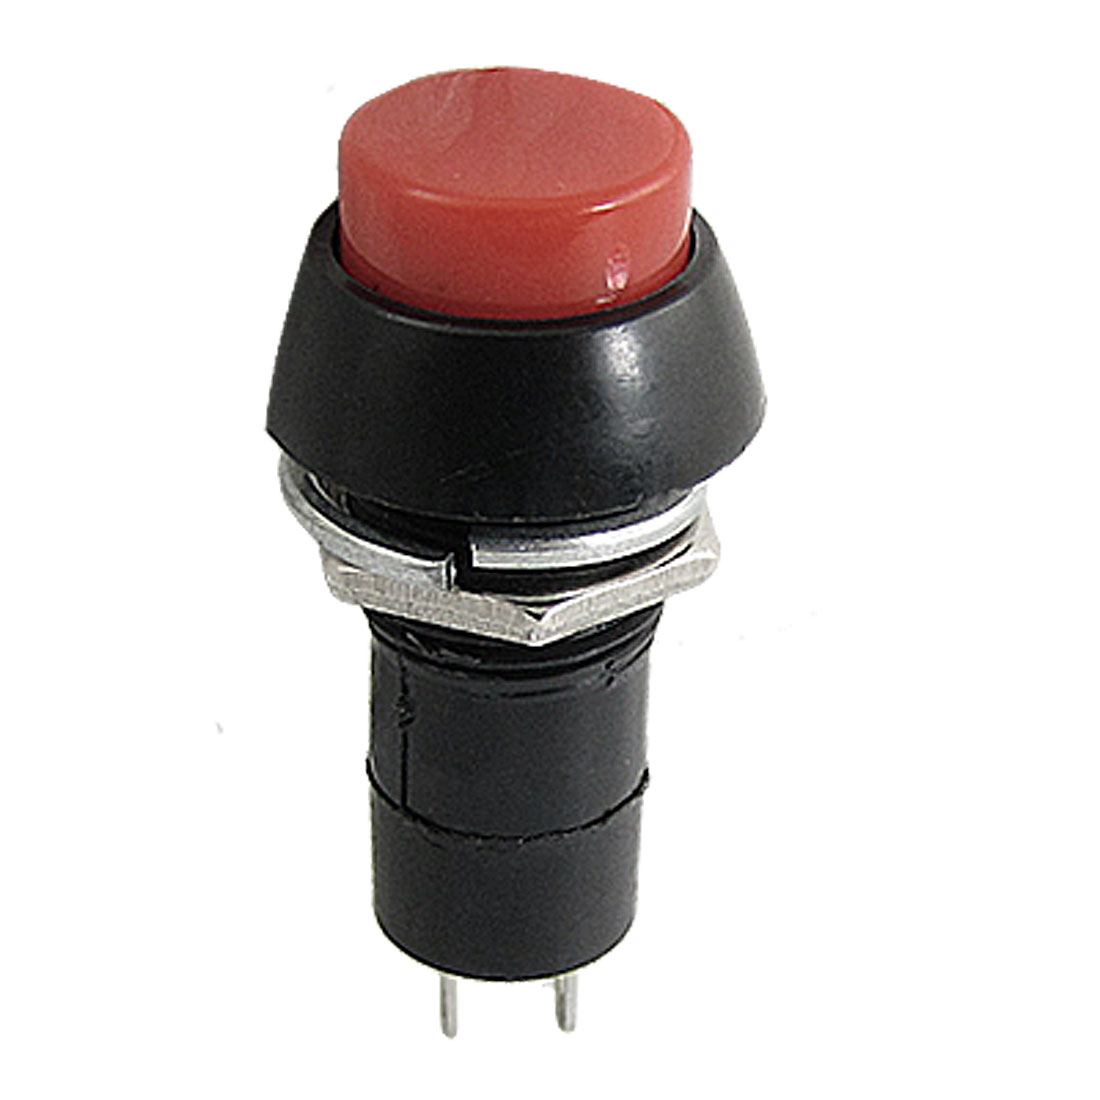 Red SPST Momentary Dash OFF-(ON) N/O Round Push Button Switch 3A 250V AC